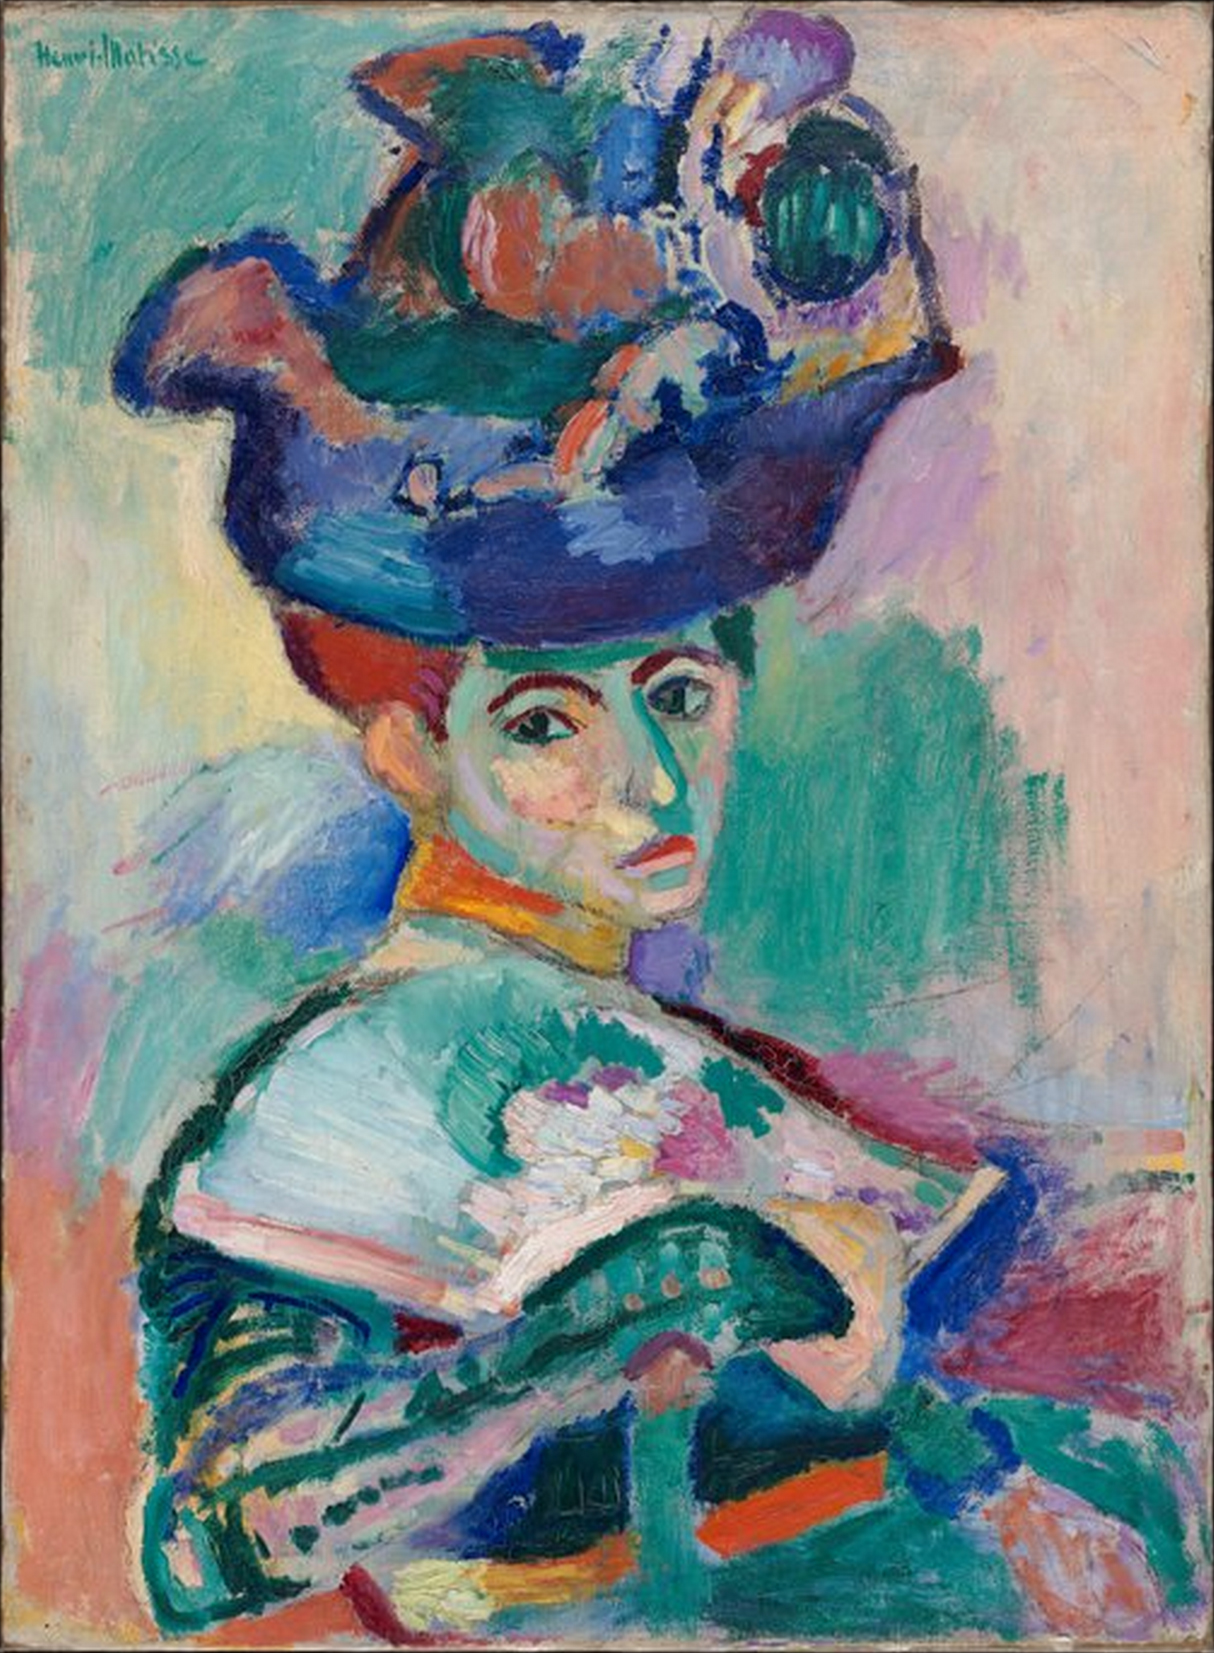 Henri Matisse, Woman with a Hat, 1905, oil on canvas, 80.6 x 59.7 cm (San Francisco Museum of Modern Art)